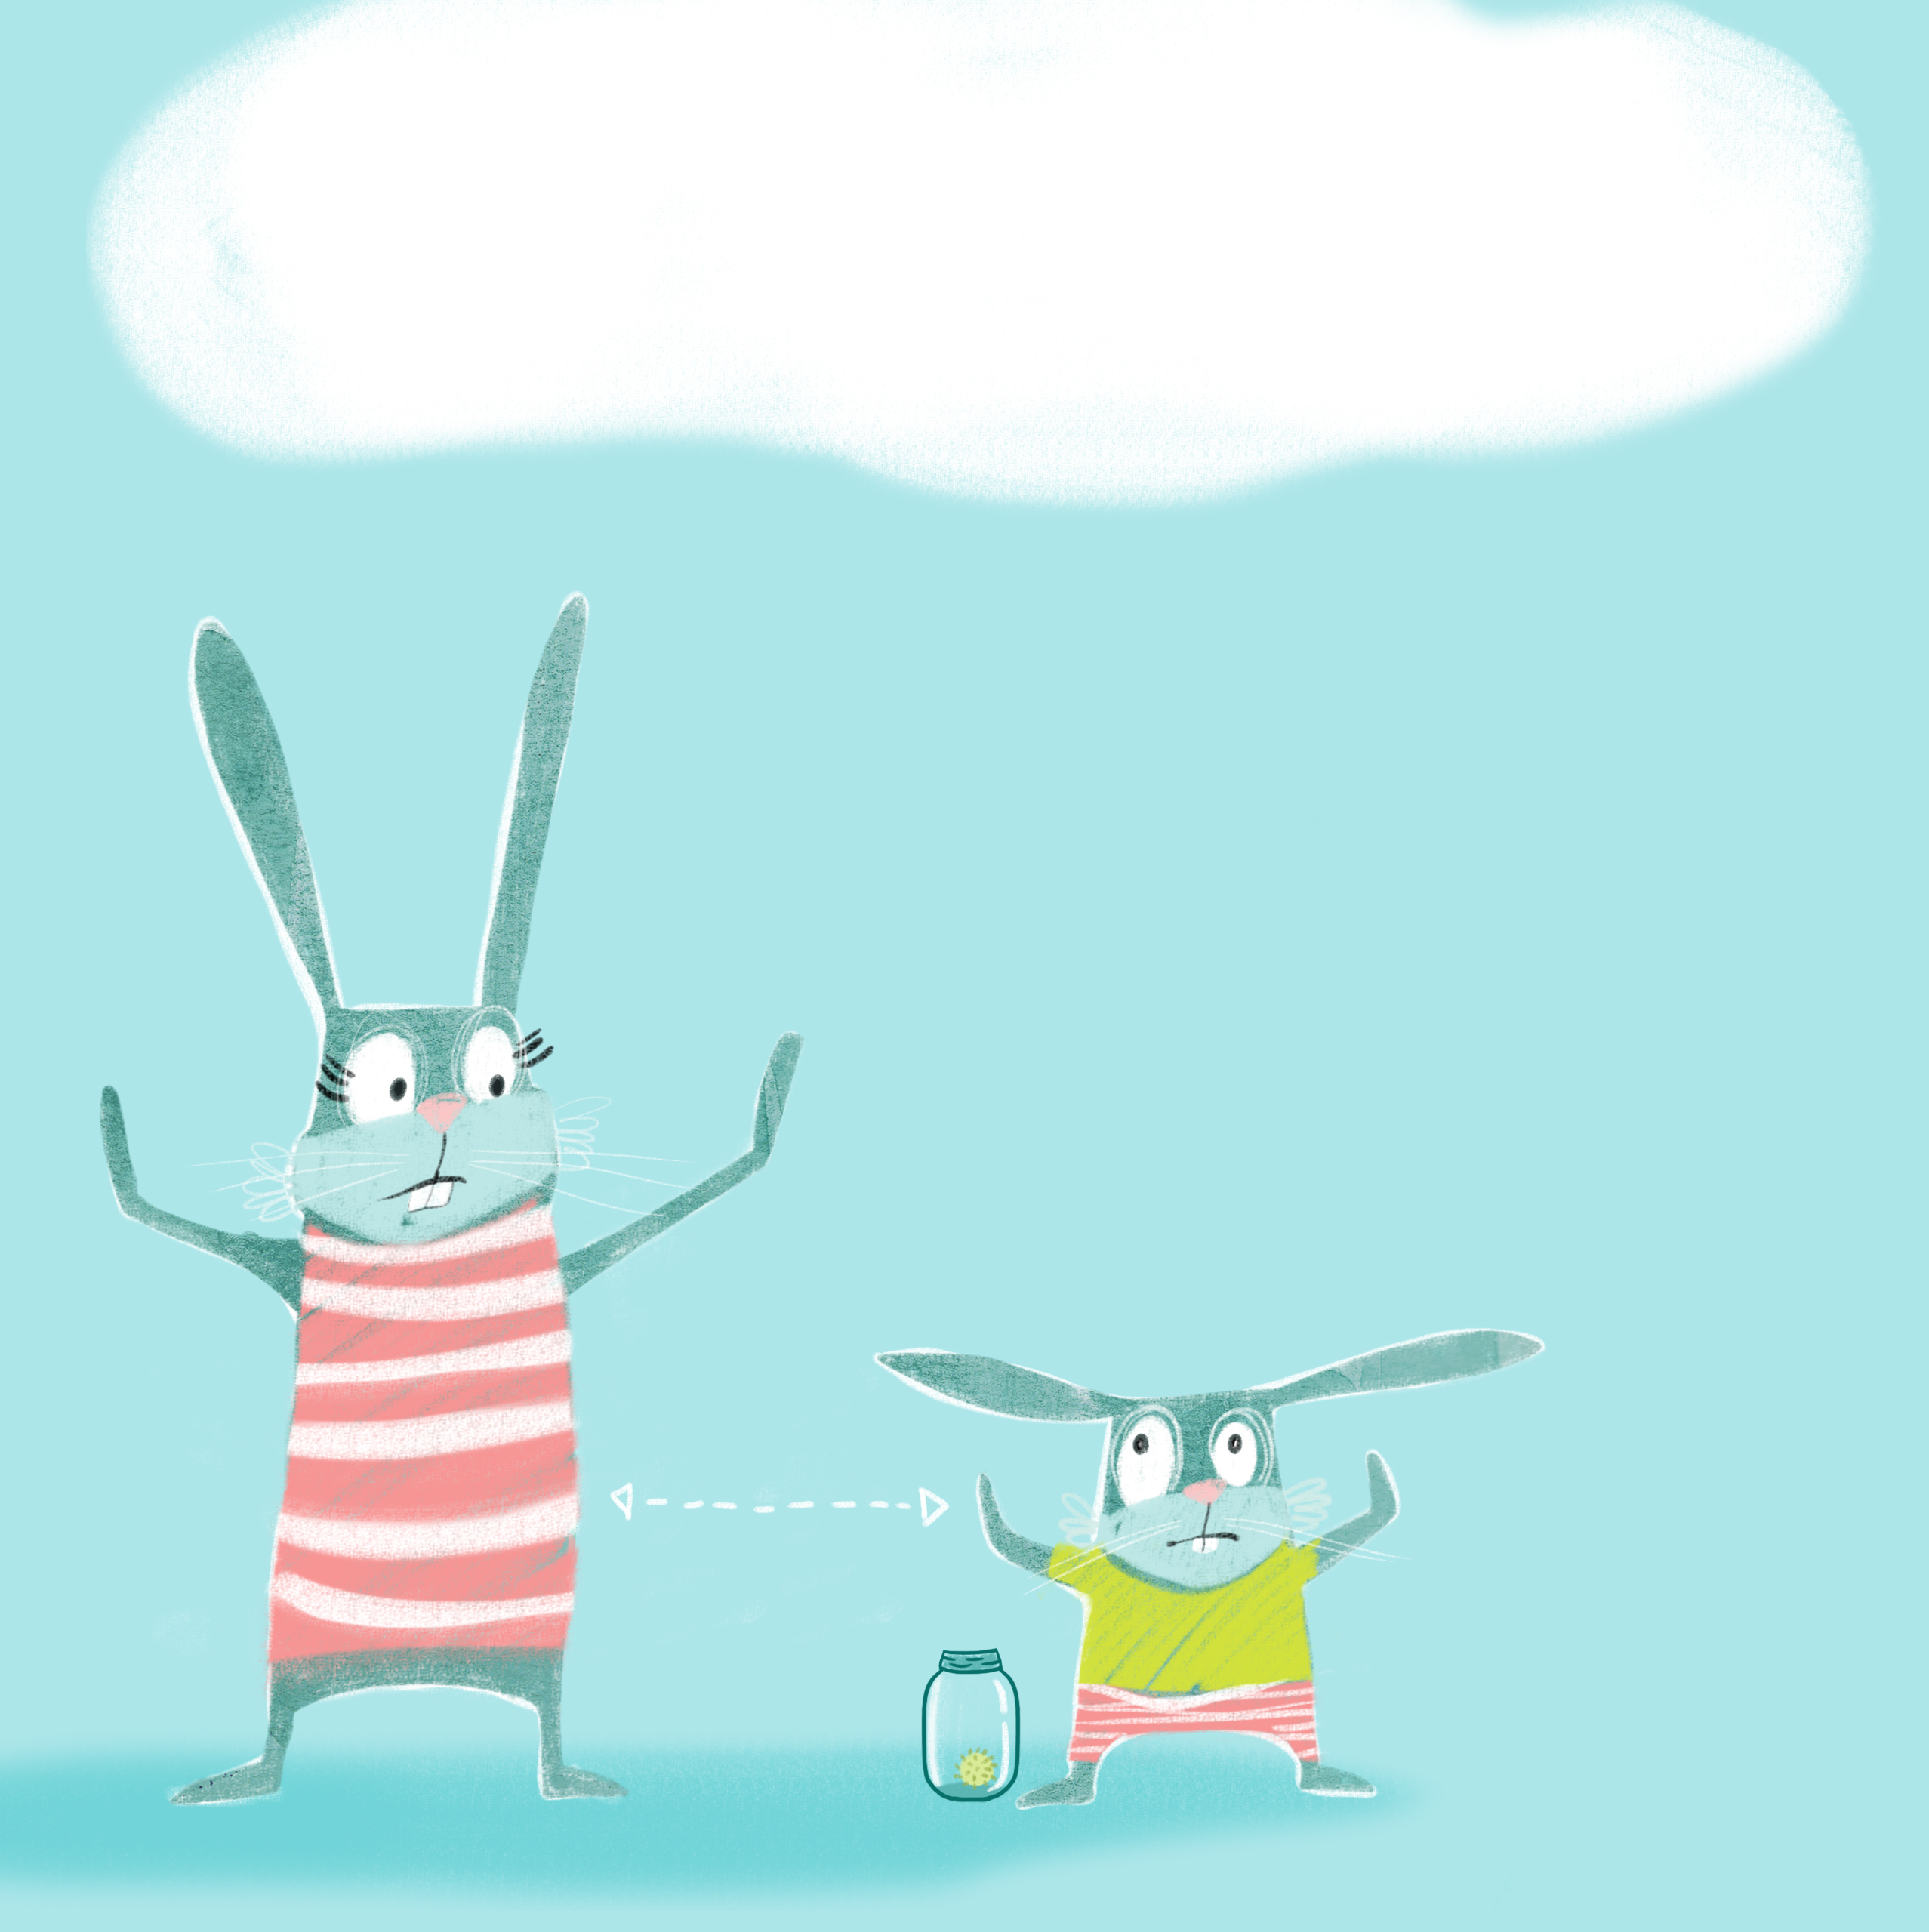 An illustration of two bunnies standing with their arms outstretched from their sides and standing at least 6 feet apart